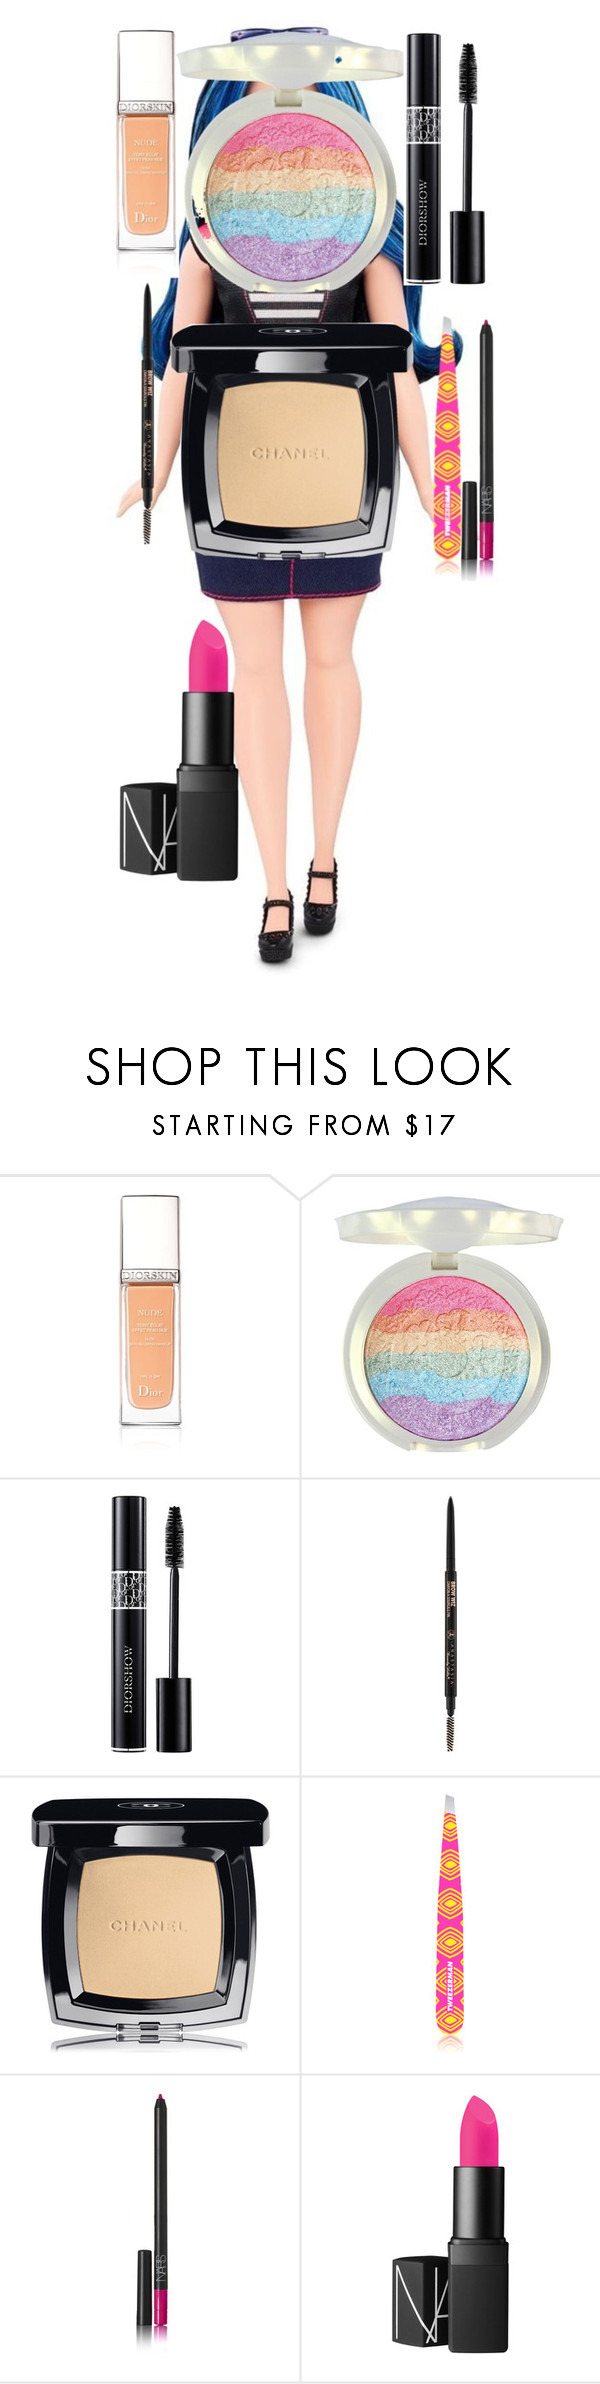 BARBIE DOLL MAKEUP TUTORIAL by oroartye-1 on Polyvore featuring beauty, Chanel, Christian Dior, NARS Cosmetics and Tweezerman